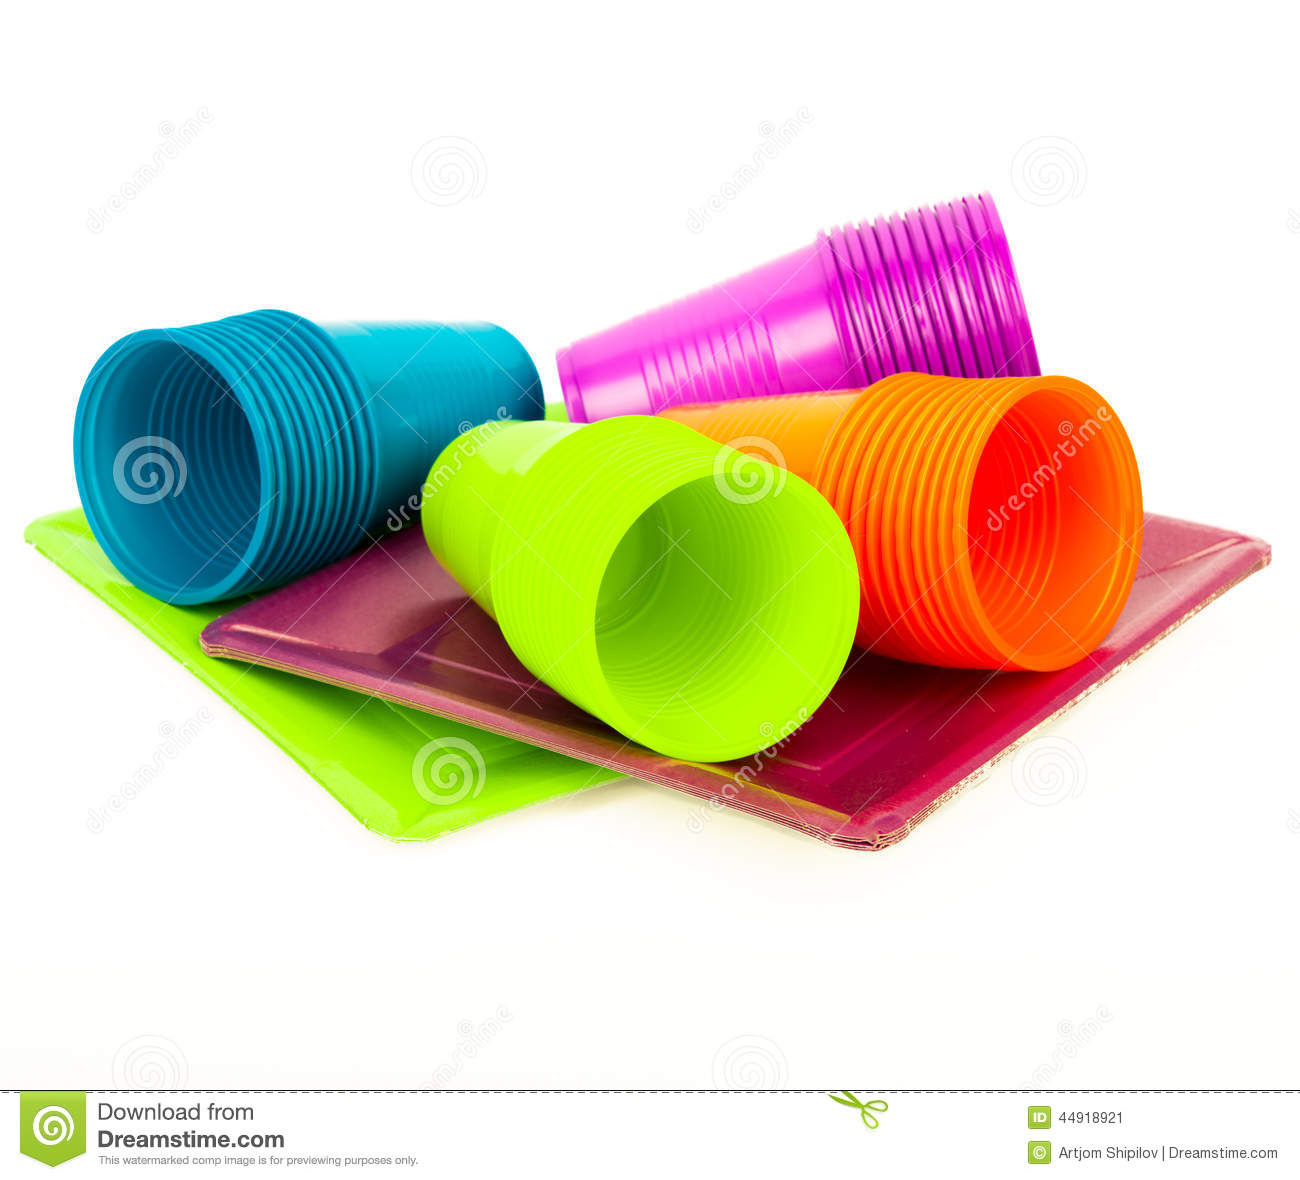 Disposable bright plastic cups and plates stacked  sc 1 st  Dreamstime.com & Disposable Bright Plastic Cups And Plates Stacked Stock Image ...